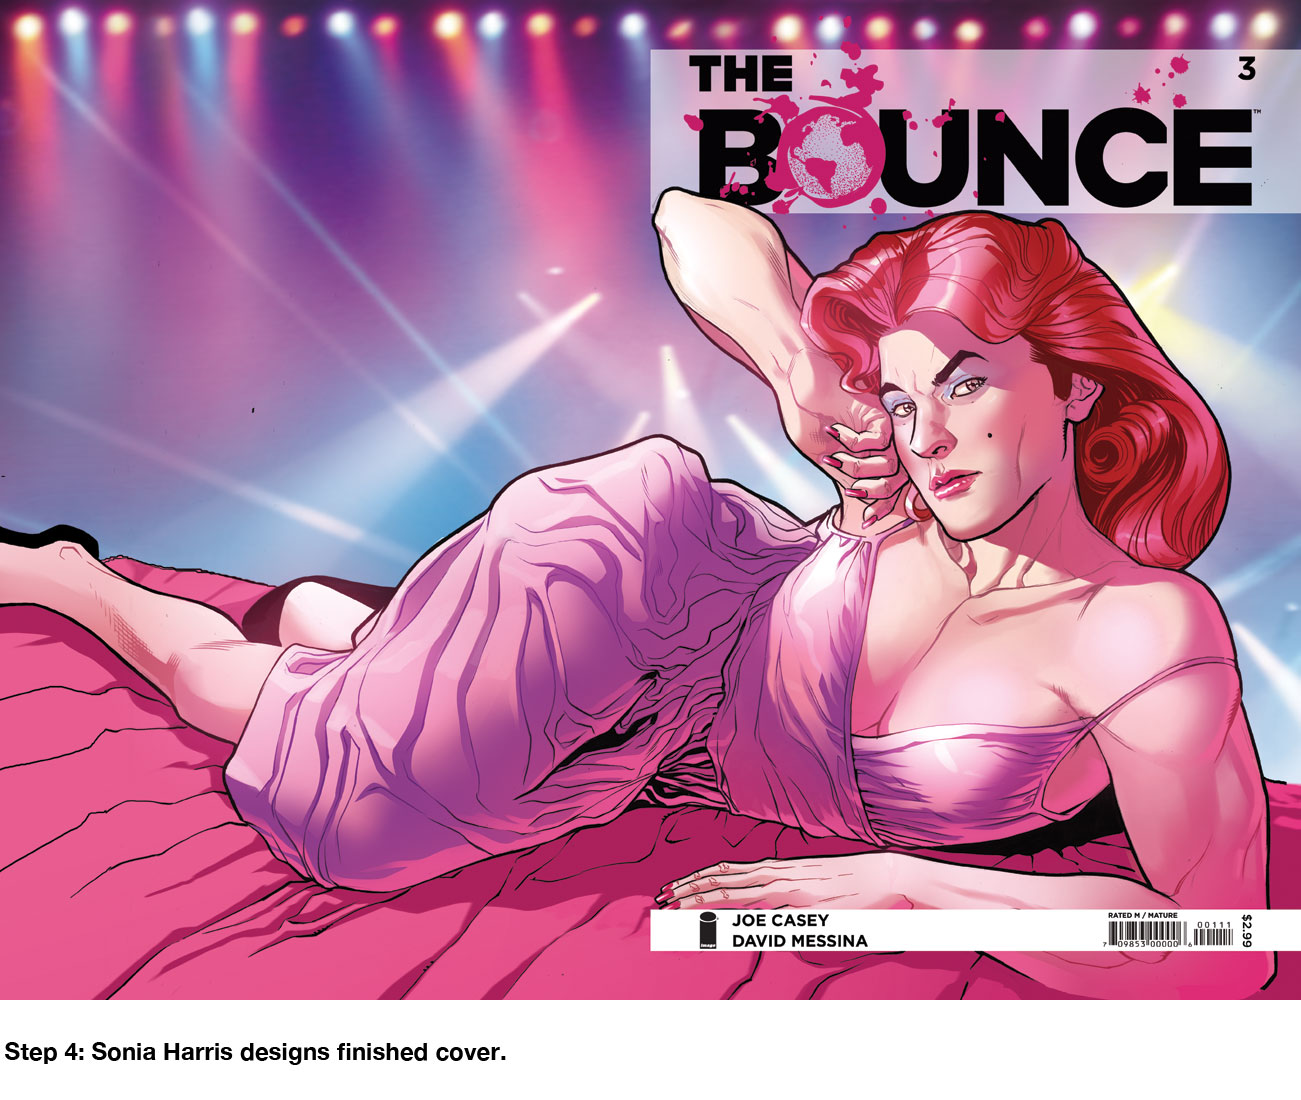 bounce_covers_process03c.jpg